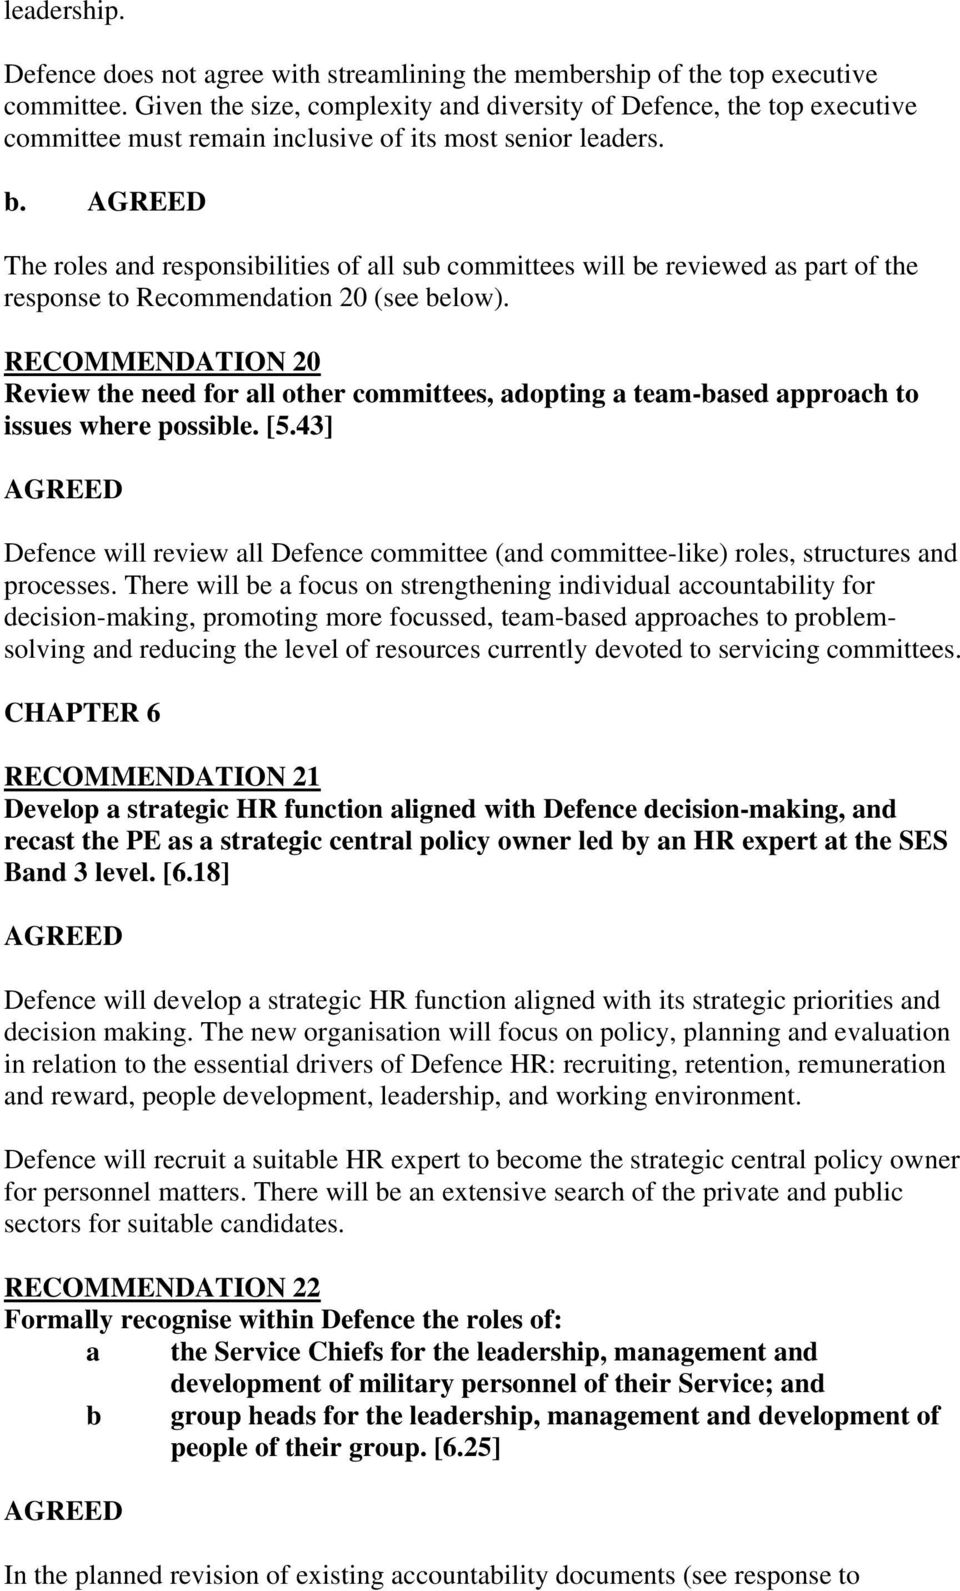 The roles and responsibilities of all sub committees will be reviewed as part of the response to Recommendation 20 (see below).